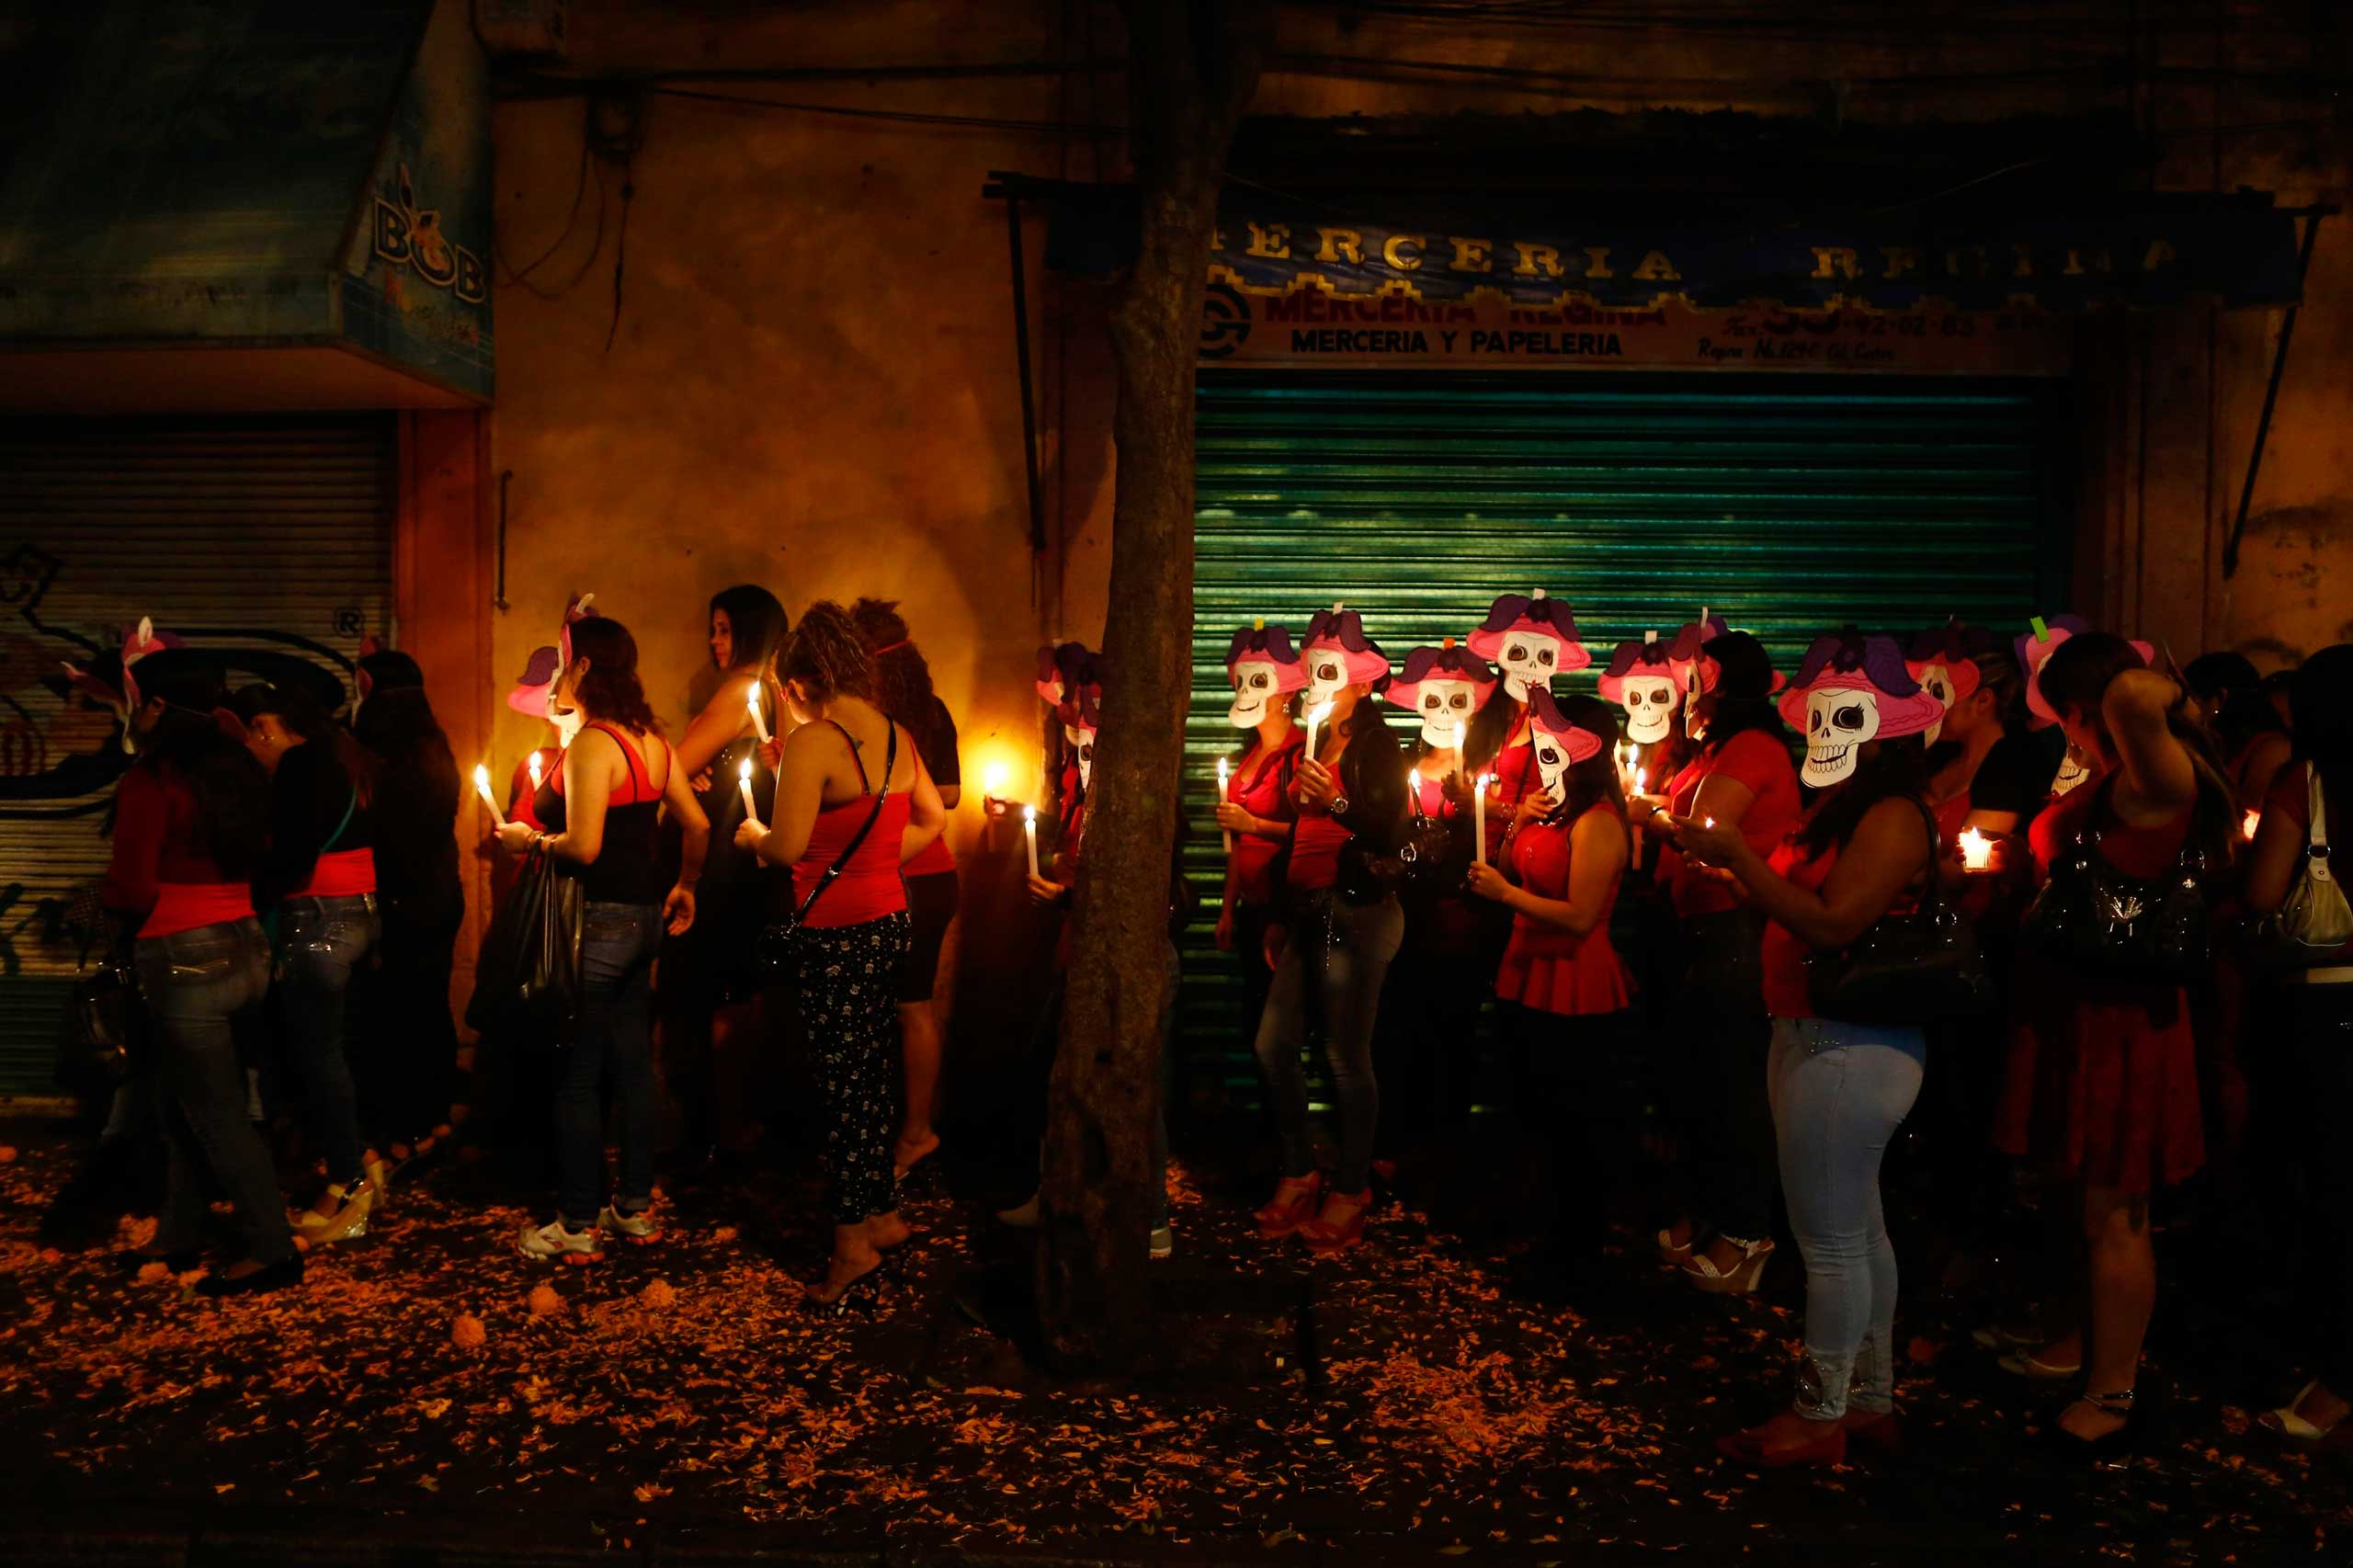 Sex workers wear skeleton masks, a traditional Mexican symbol representing the Day of the Dead, during a procession to remember their deceased colleagues, especially those who were violently murdered, in Mexico City on Oct. 27, 2014.